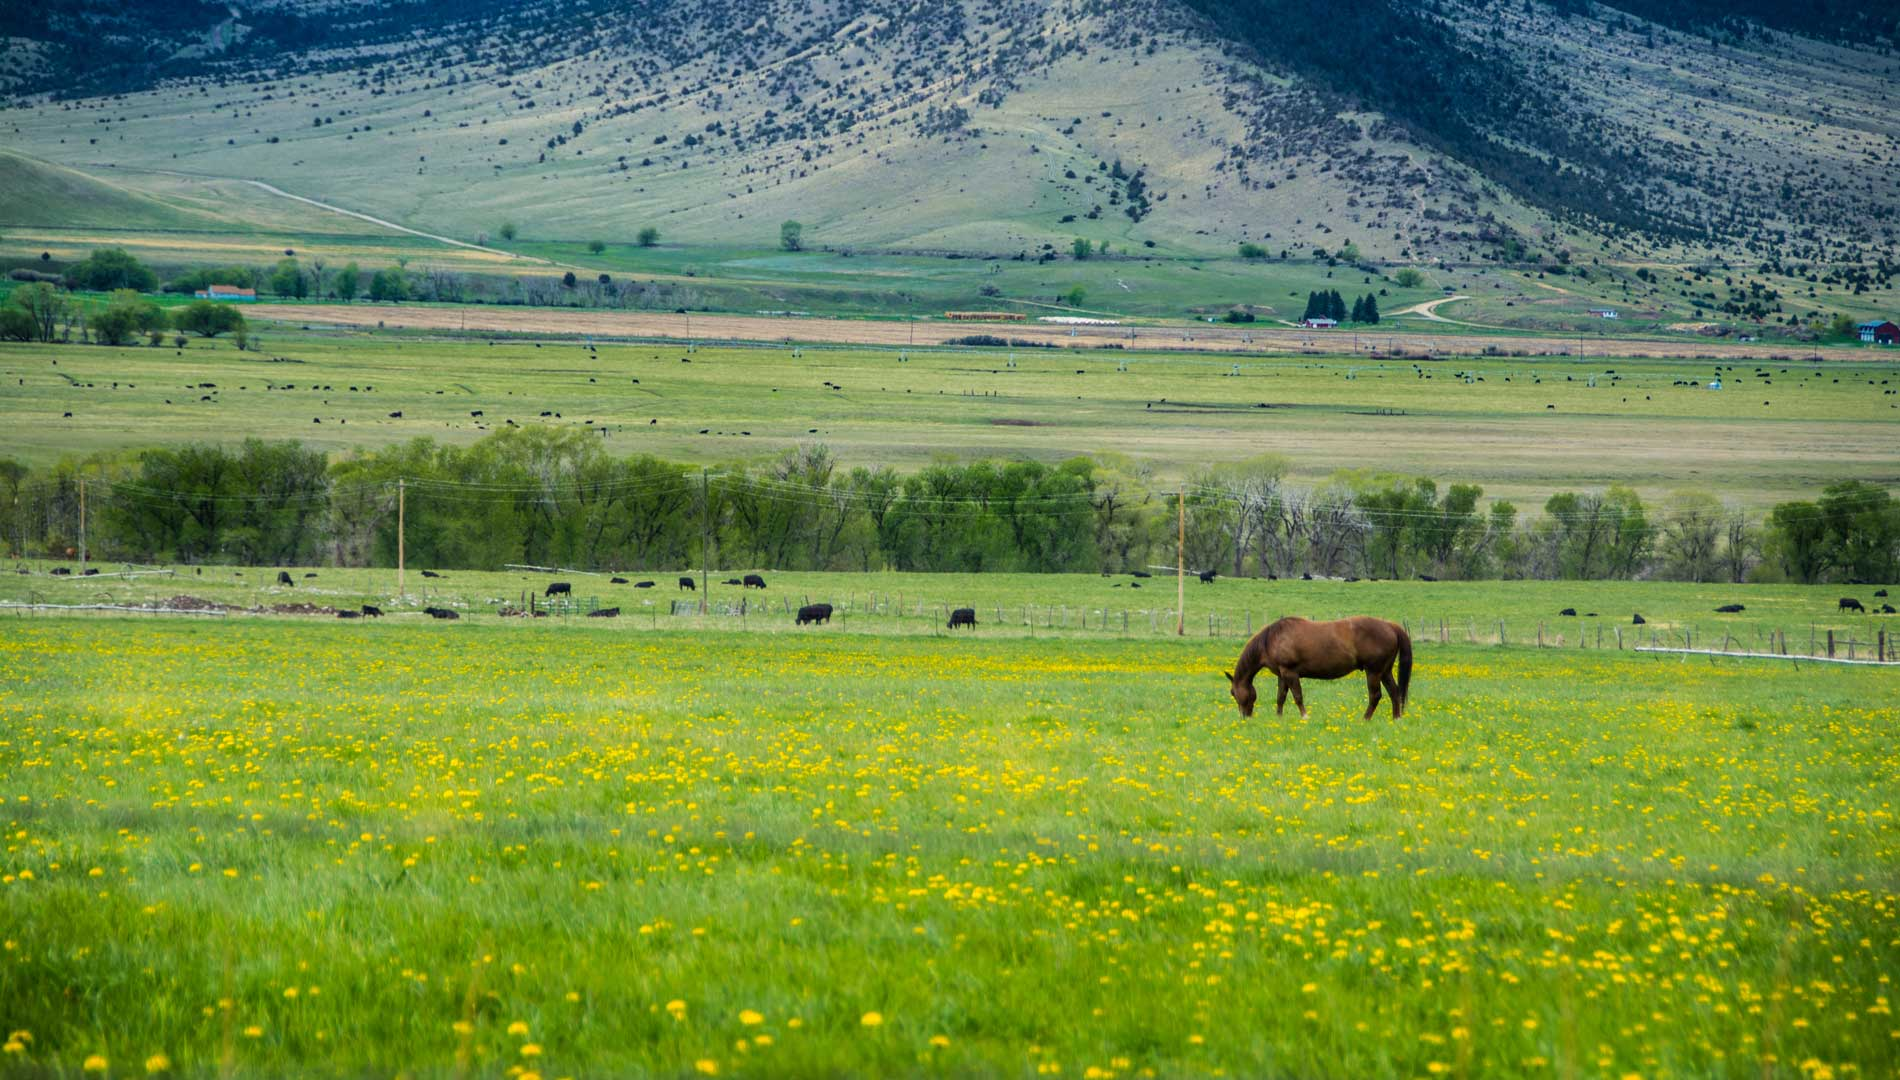 Field with horse in Butte, Montana